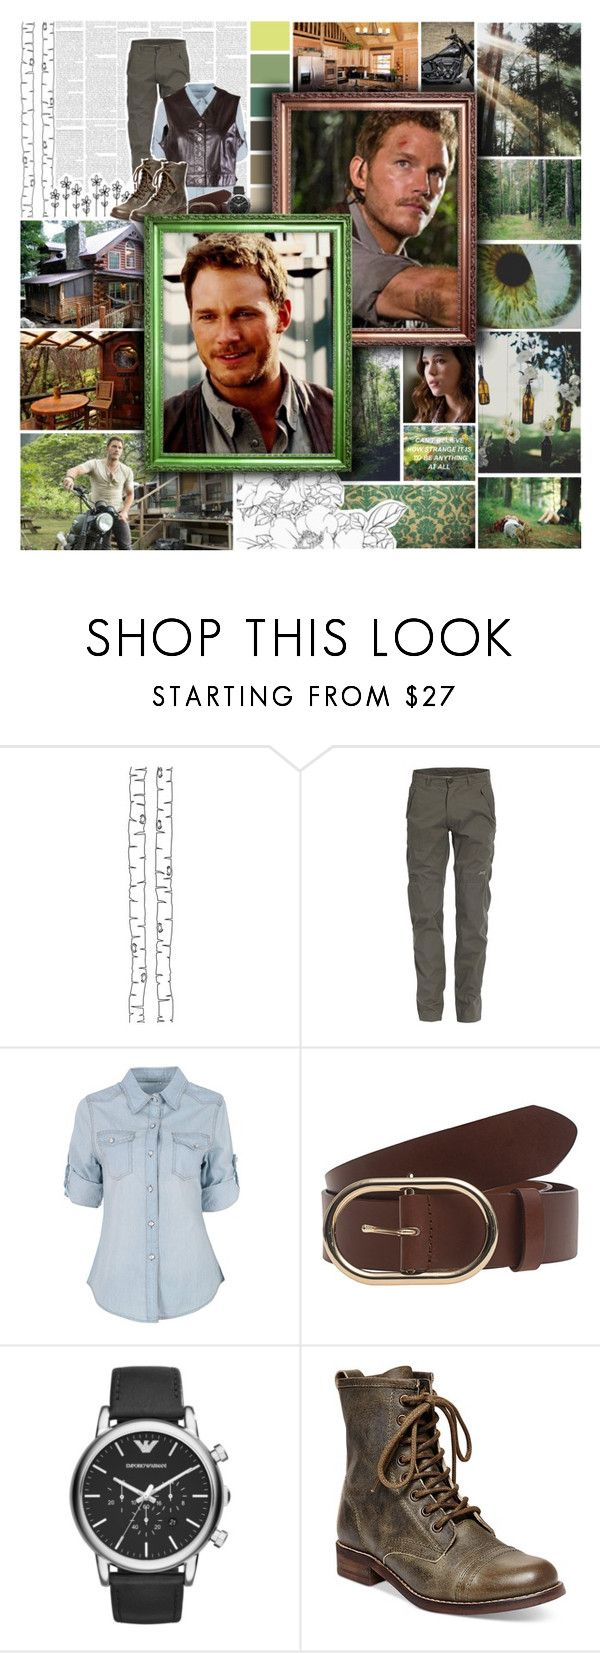 """""""☼0.99; Round 6. Ordinary Life From The Battle Of The Superheroes And Villains"""" by once-upon-a-peytenn ❤ liked on Polyvore featuring Hush, ferm LIVING, Harley-Davidson, Jeep, Frame Denim, Emporio Armani, Steve Madden, Emanuel Ungaro and BotSHaV106"""